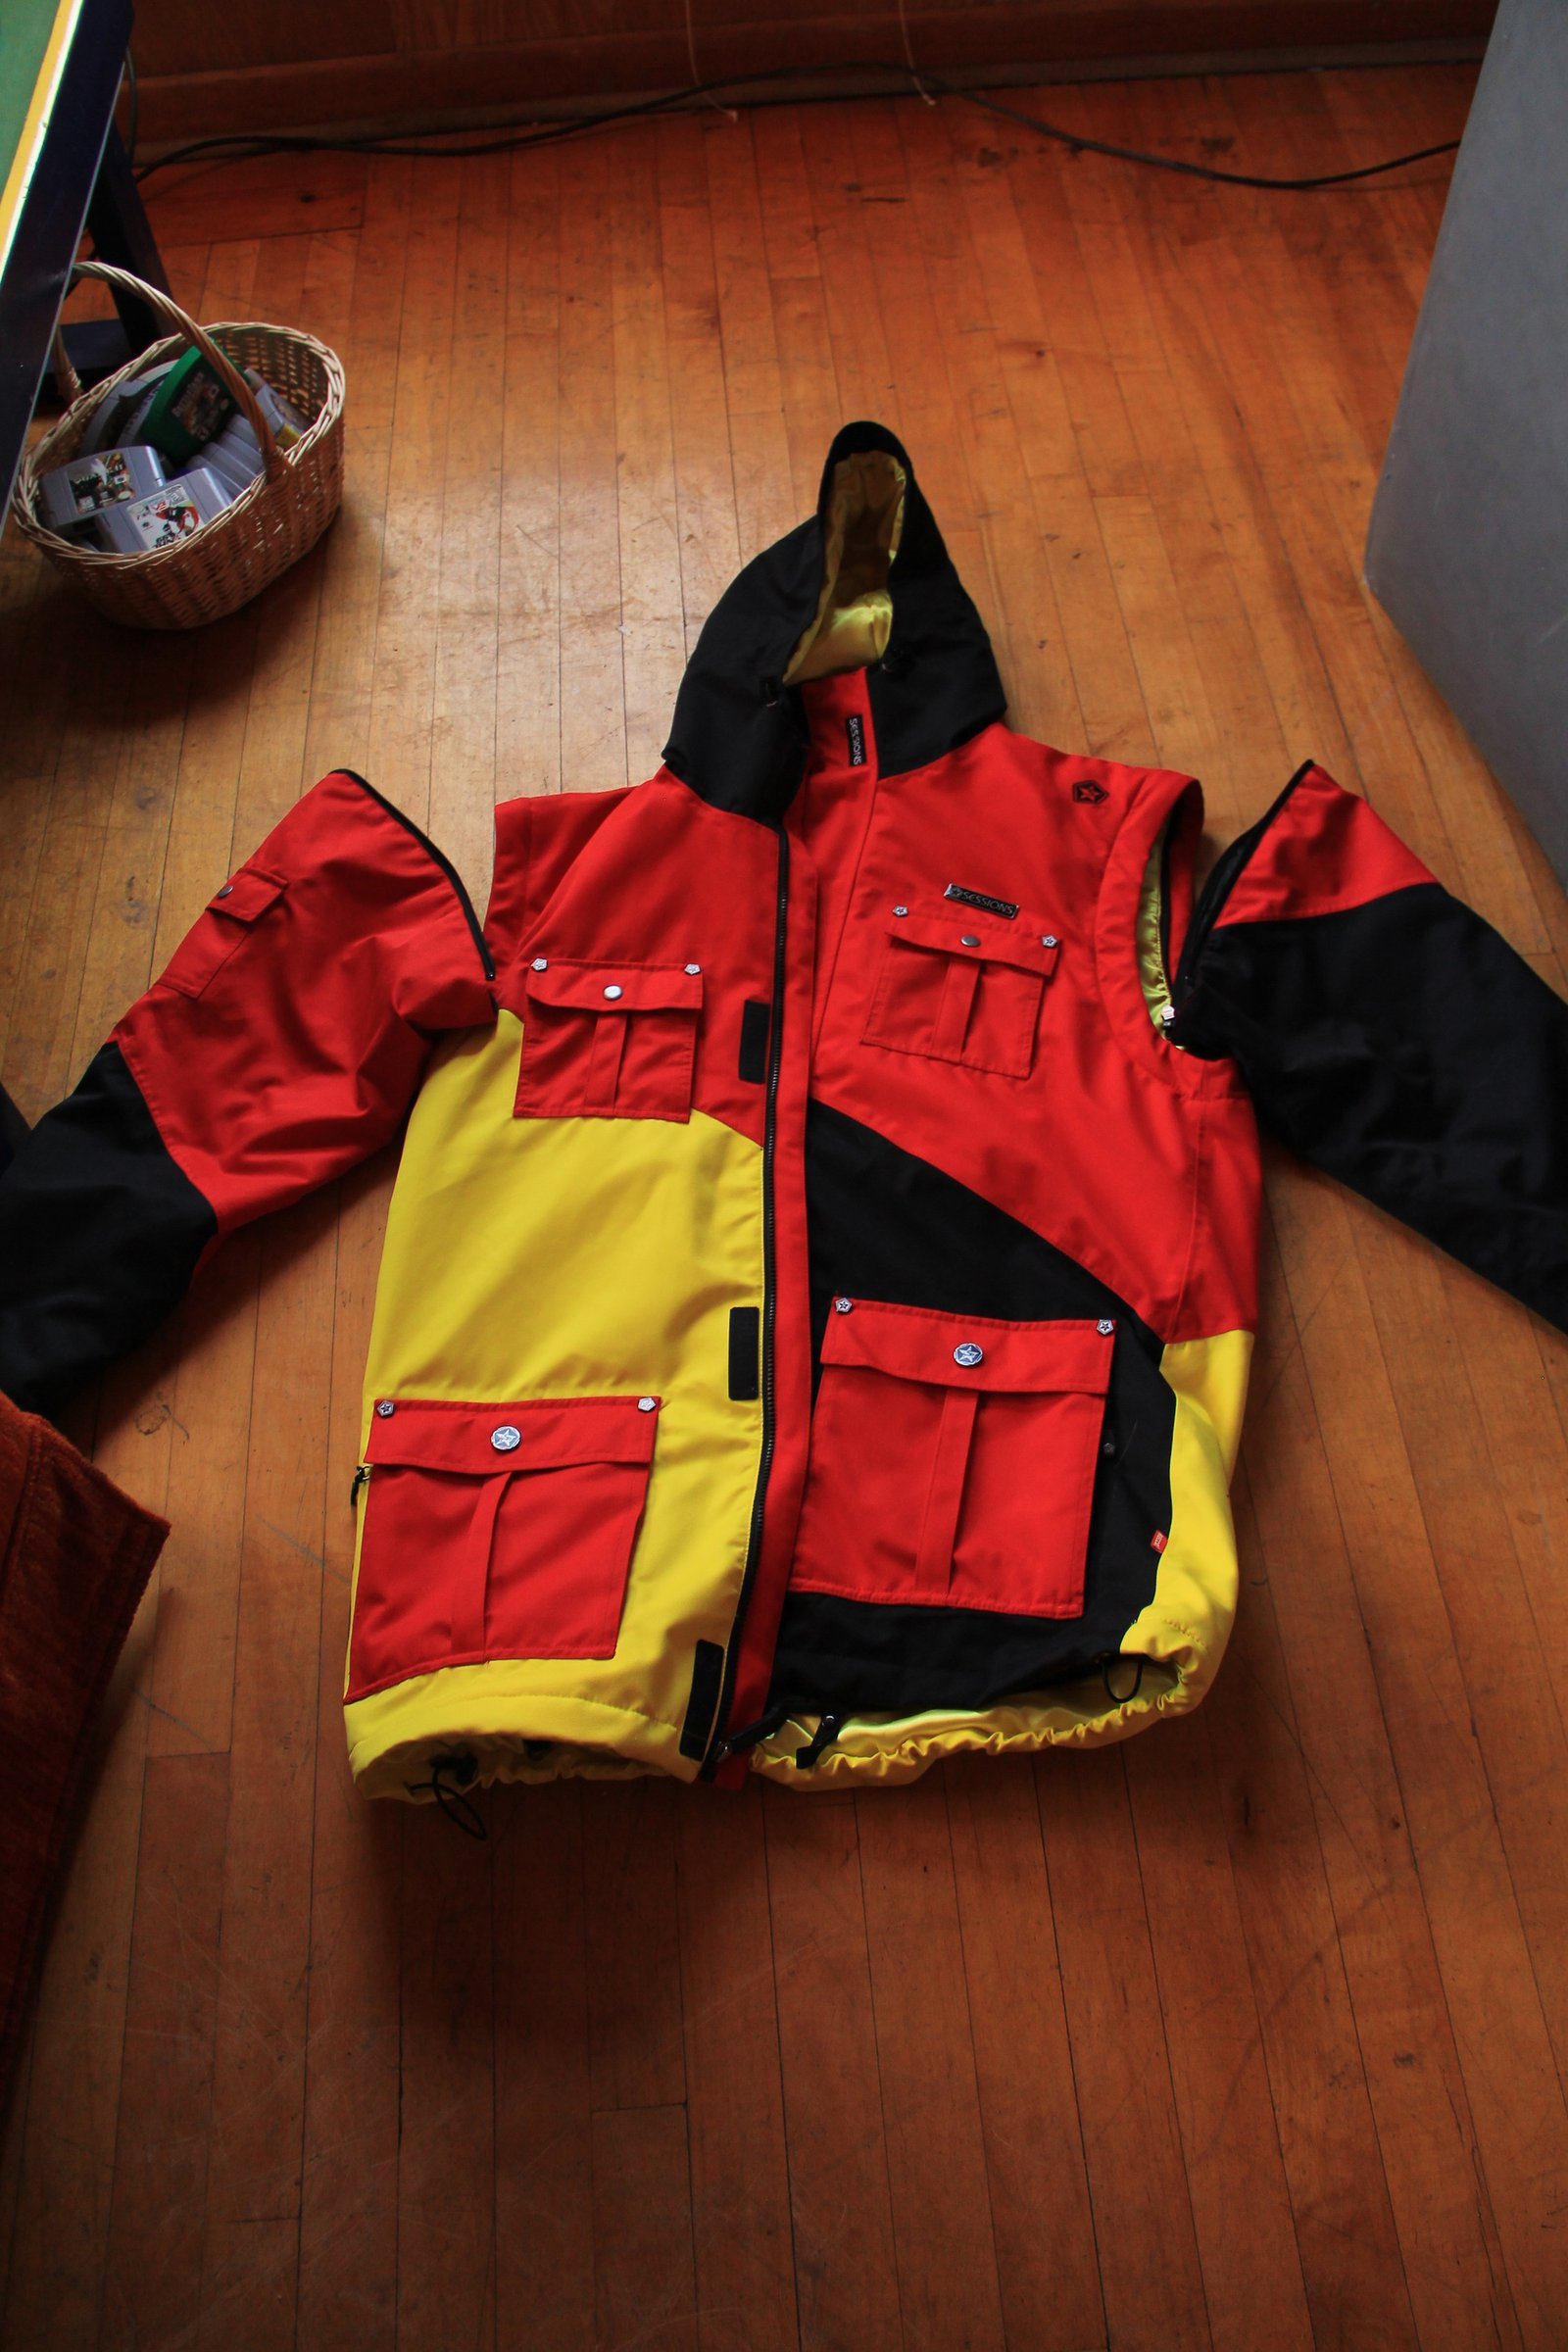 Ns/sessions jacket